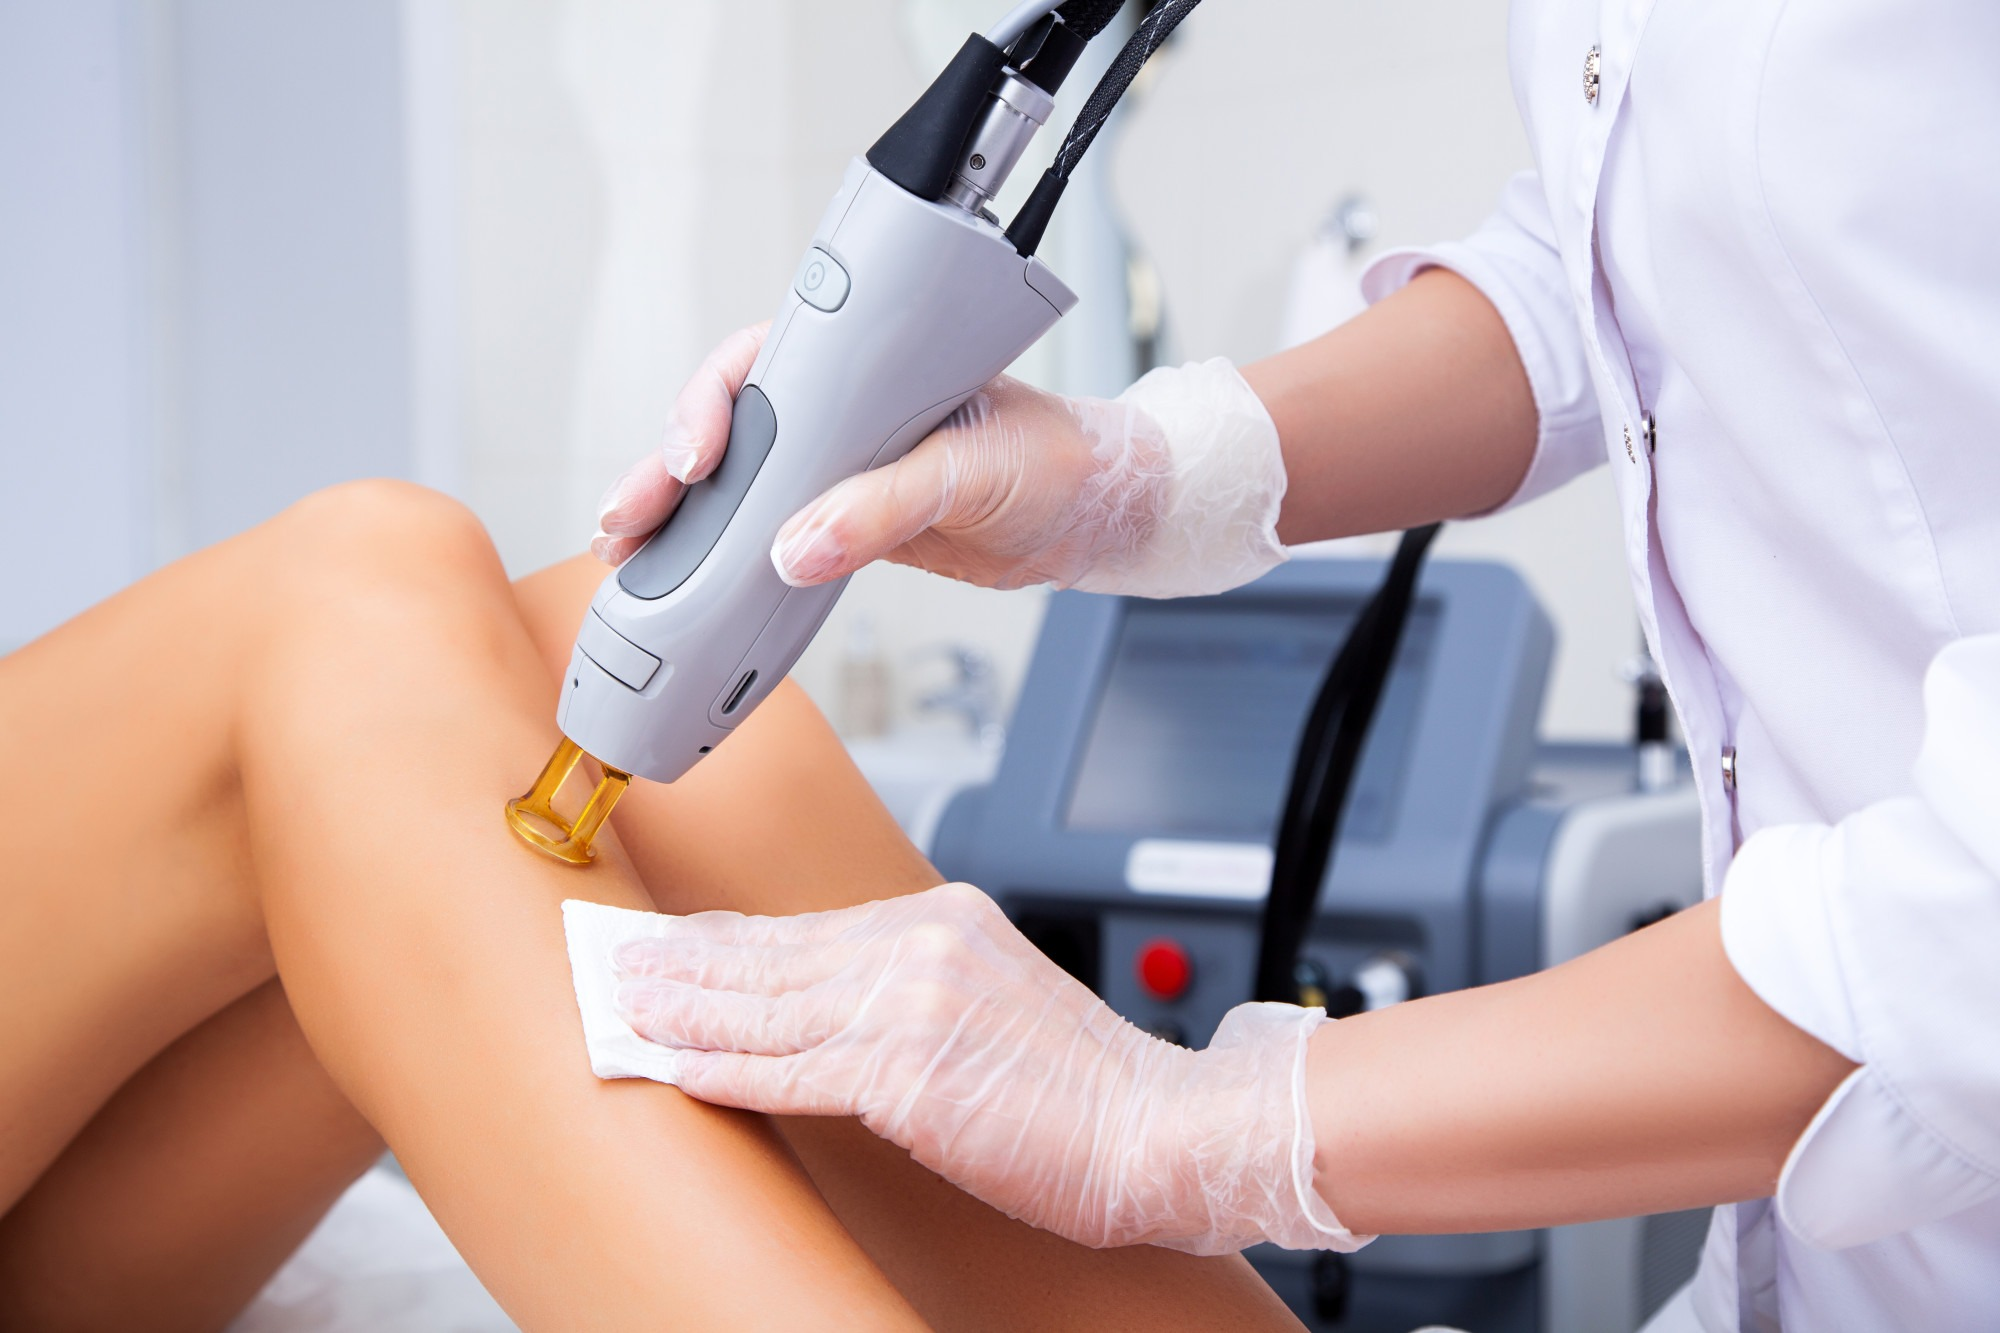 7 Types of Hair Removal Explained